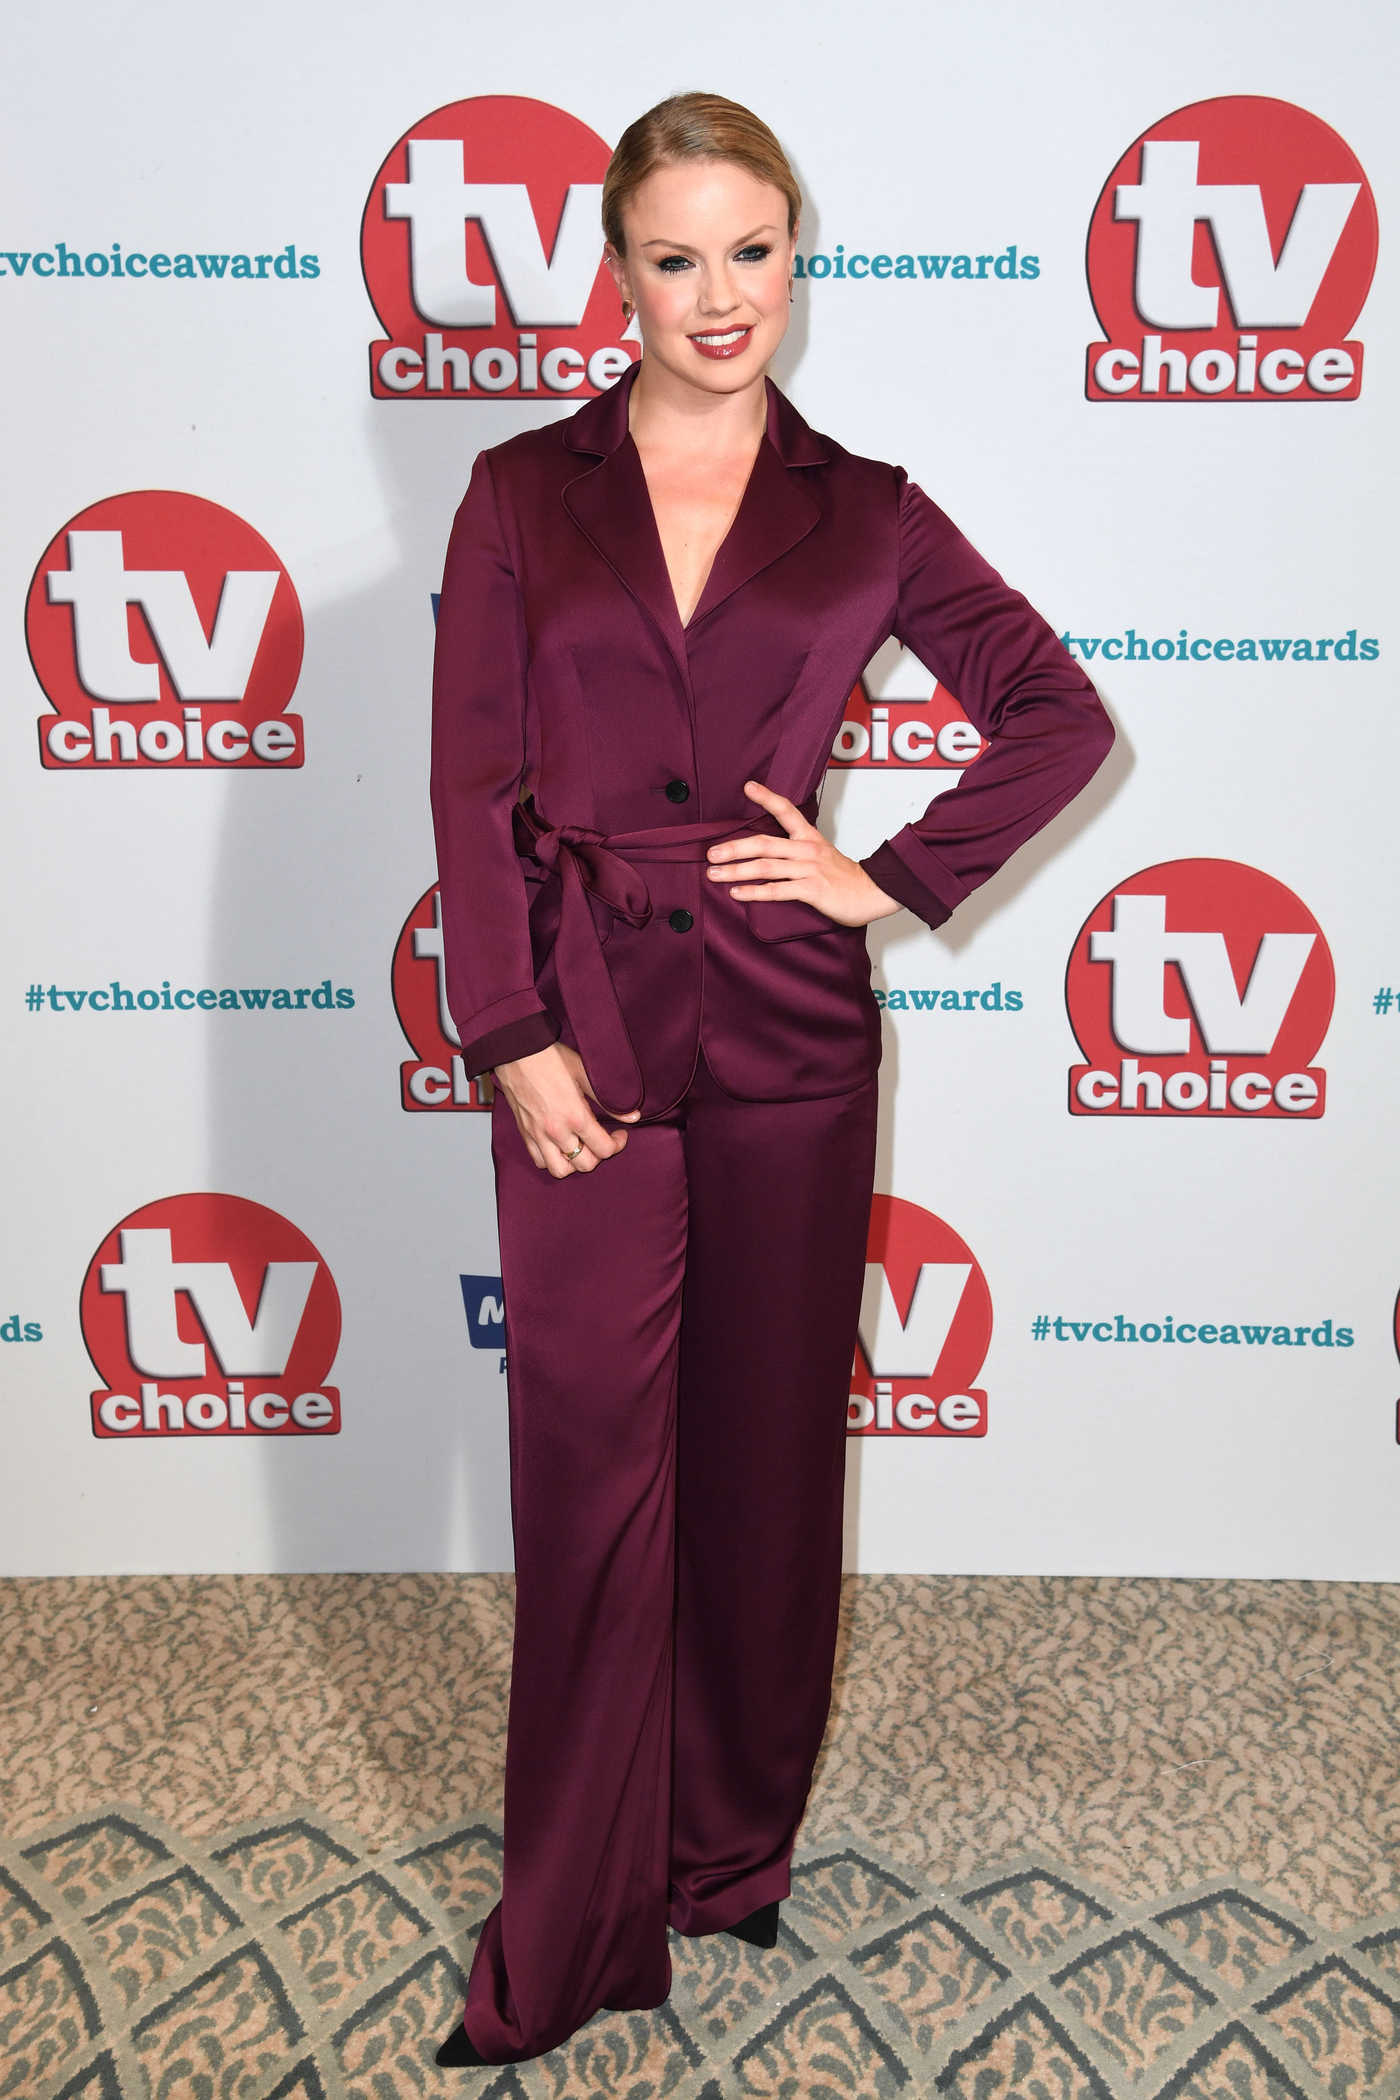 Joanne Clifton at TV Choice Awards at The Dorchester in London 09/04/2017